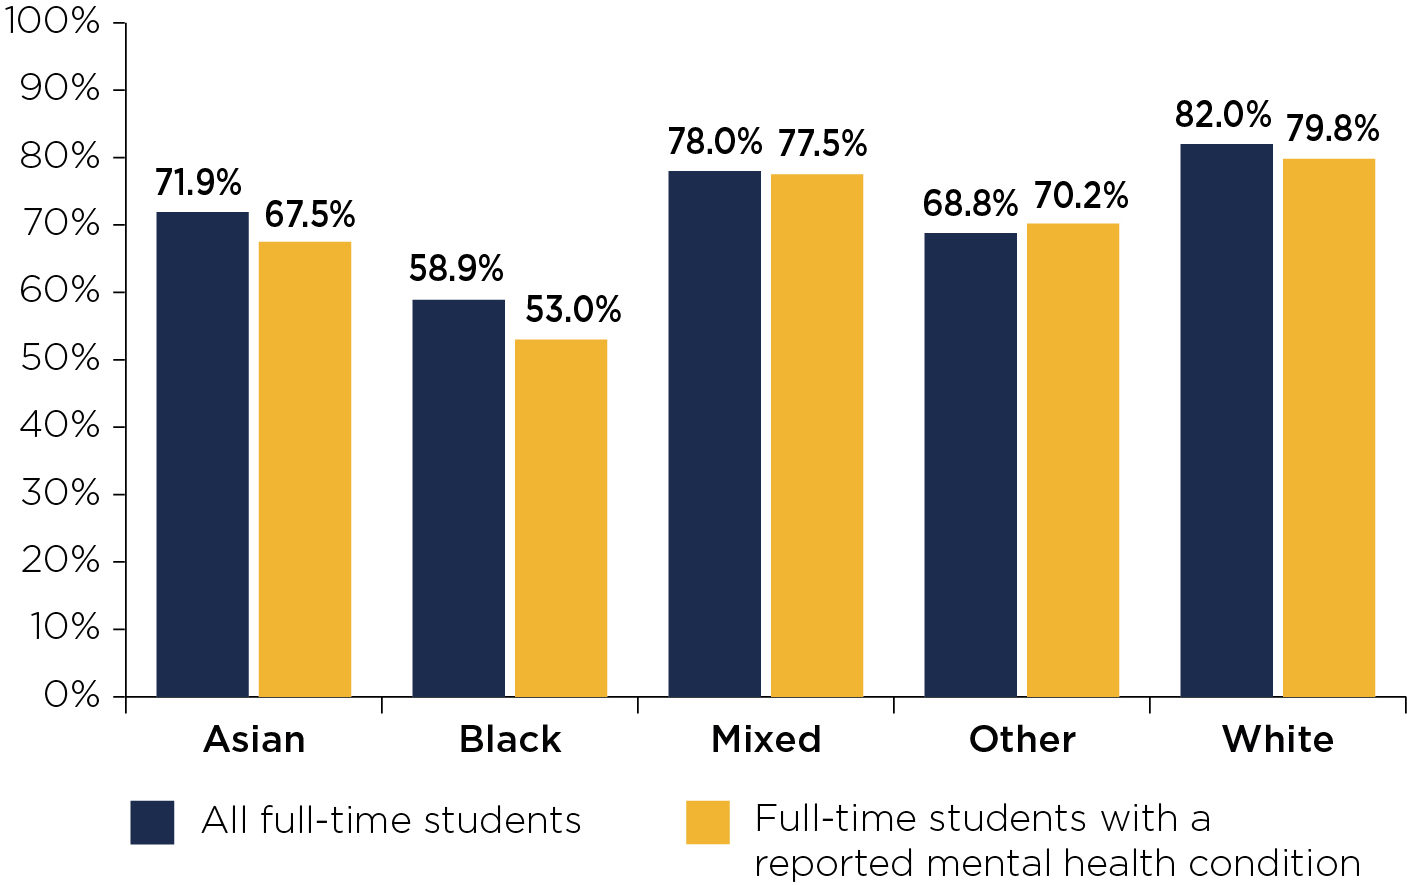 Figure 3: Attainment rates of full-time students graduating in 2017-18 by ethnicity